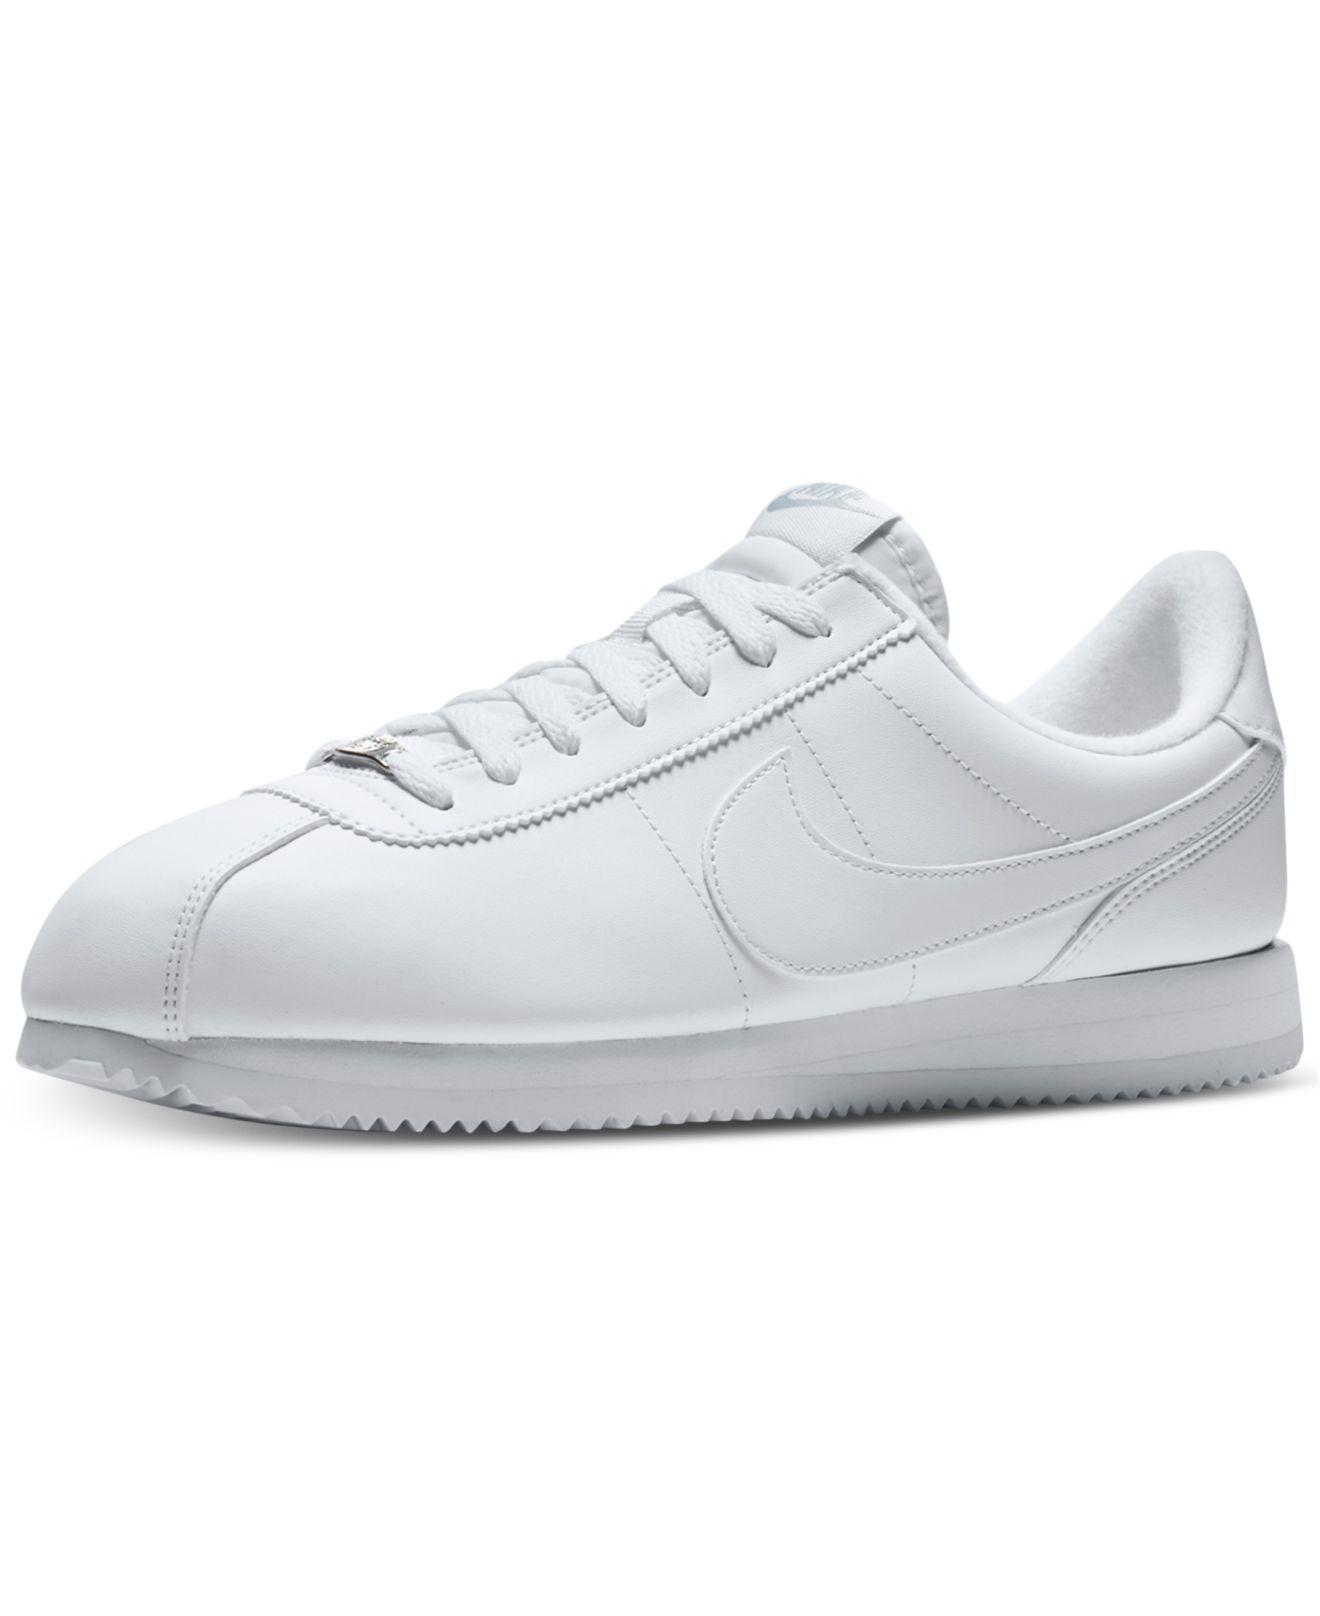 5c4db487fe3a Lyst - Nike Men s Cortez Basic Leather Casual Sneakers From Finish Line in  White for Men